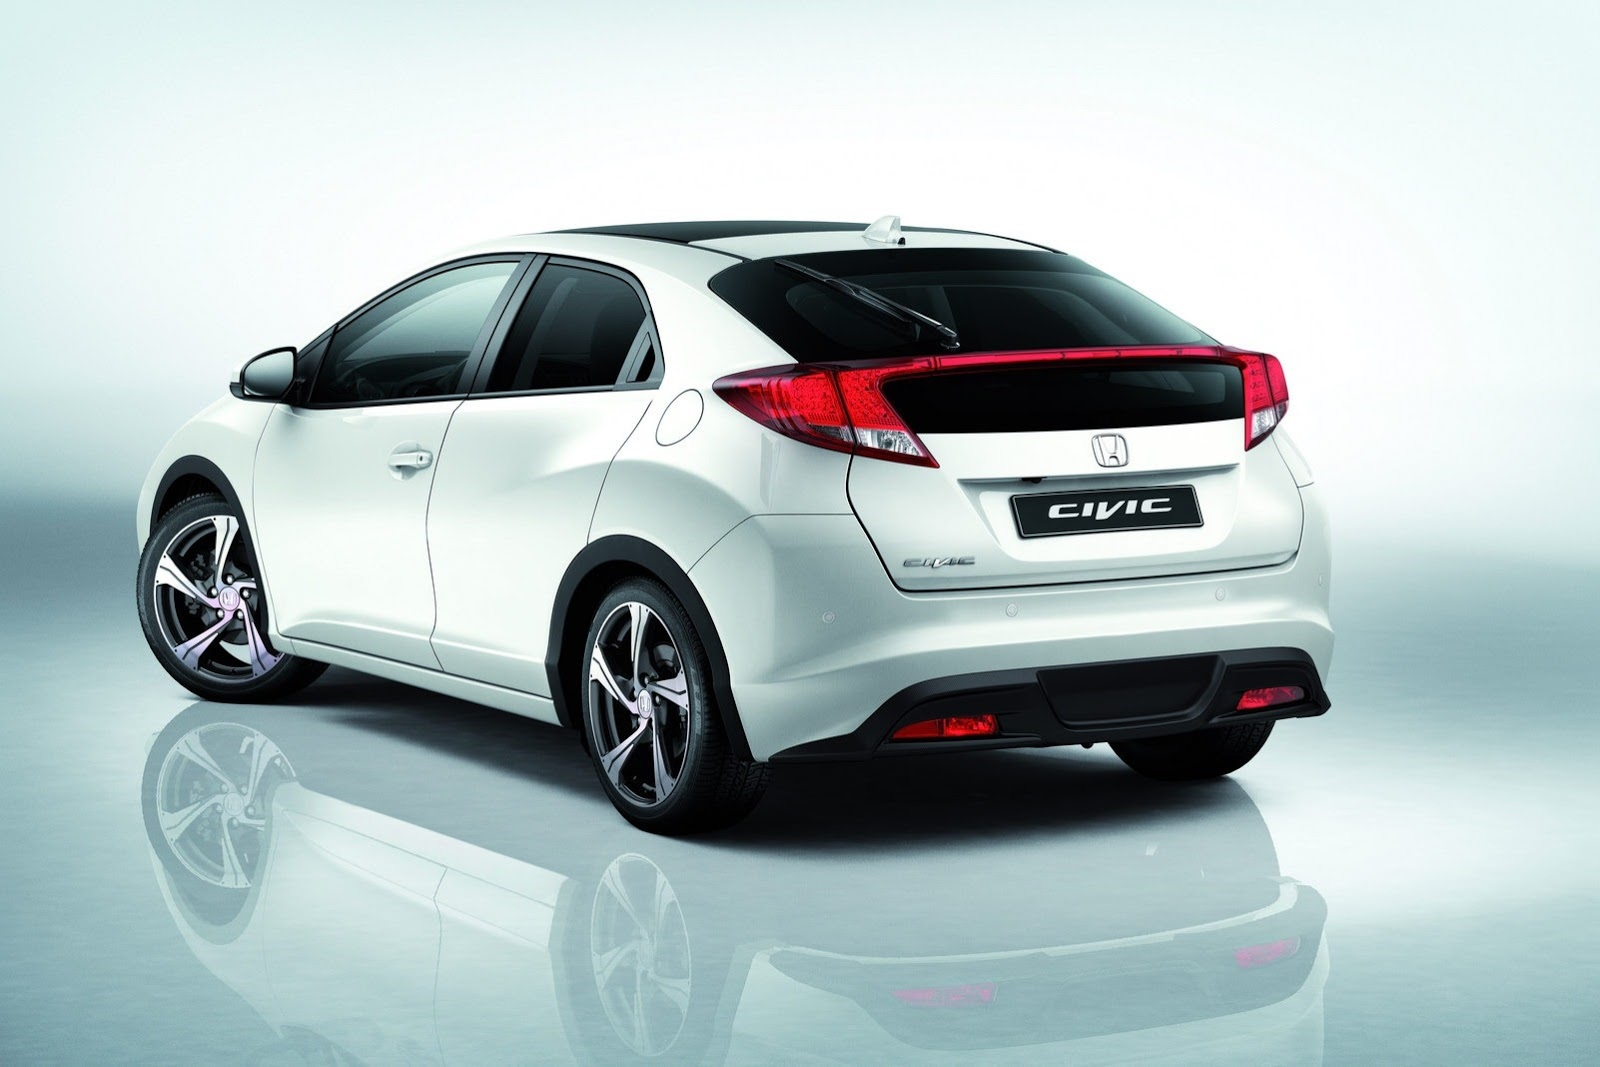 Honda propose un pack aero pour sa civic for Honda civic hatchback 2013